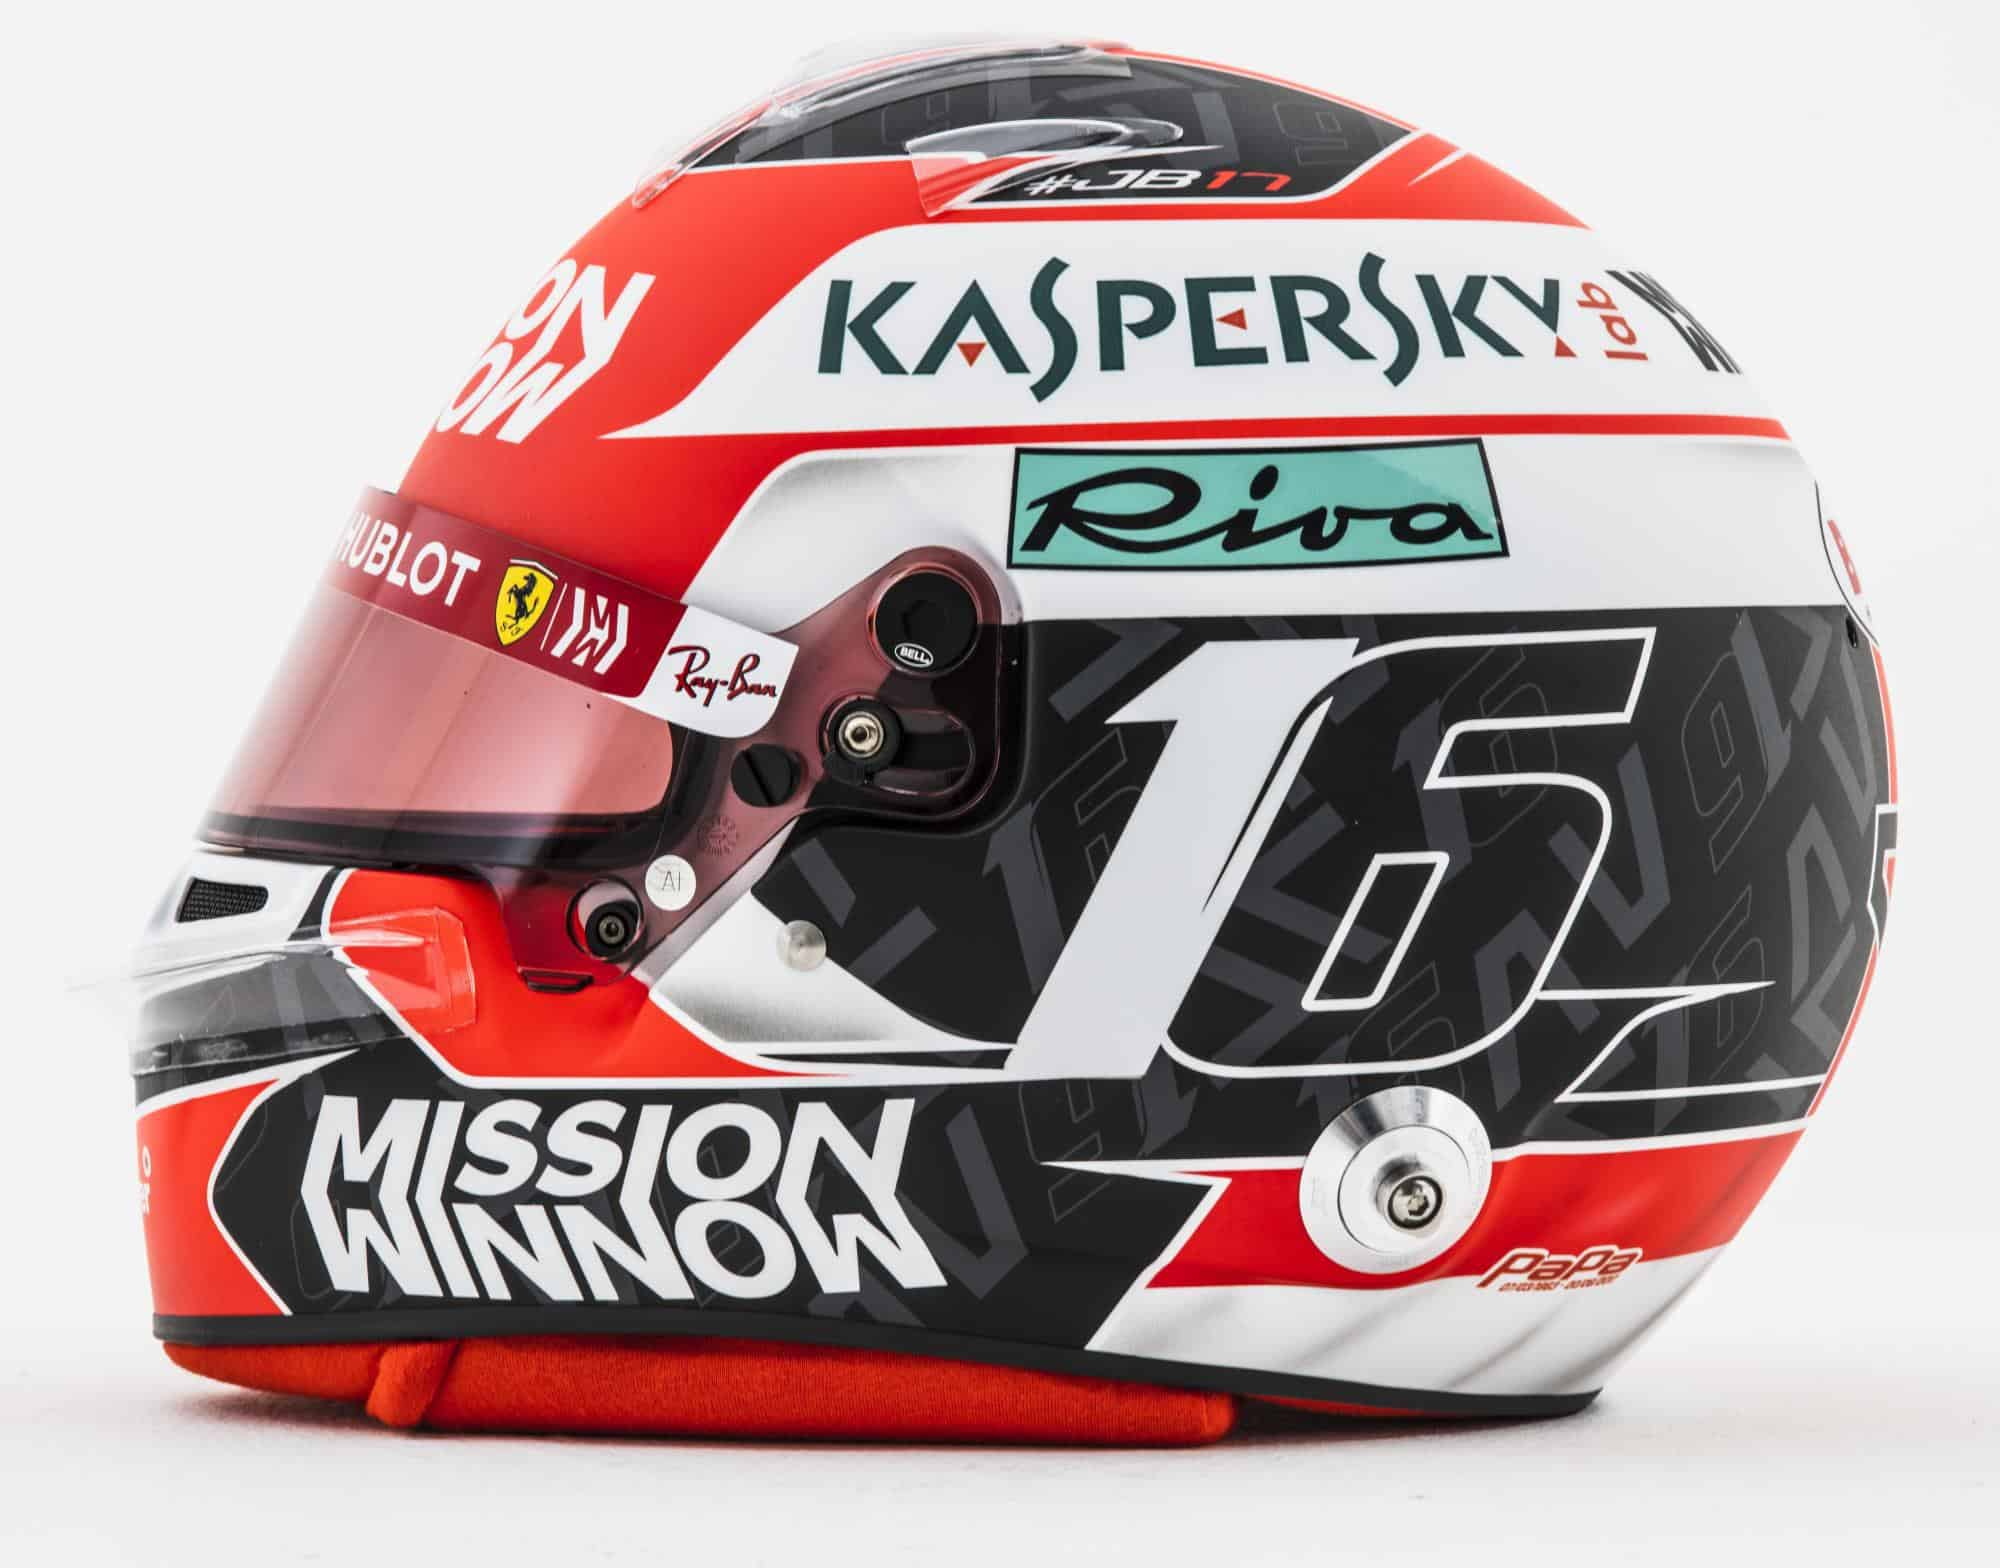 2019 F1 Charles Leclerc Ferrari helmet left side Photo Ferrari Edited by MAXF1net